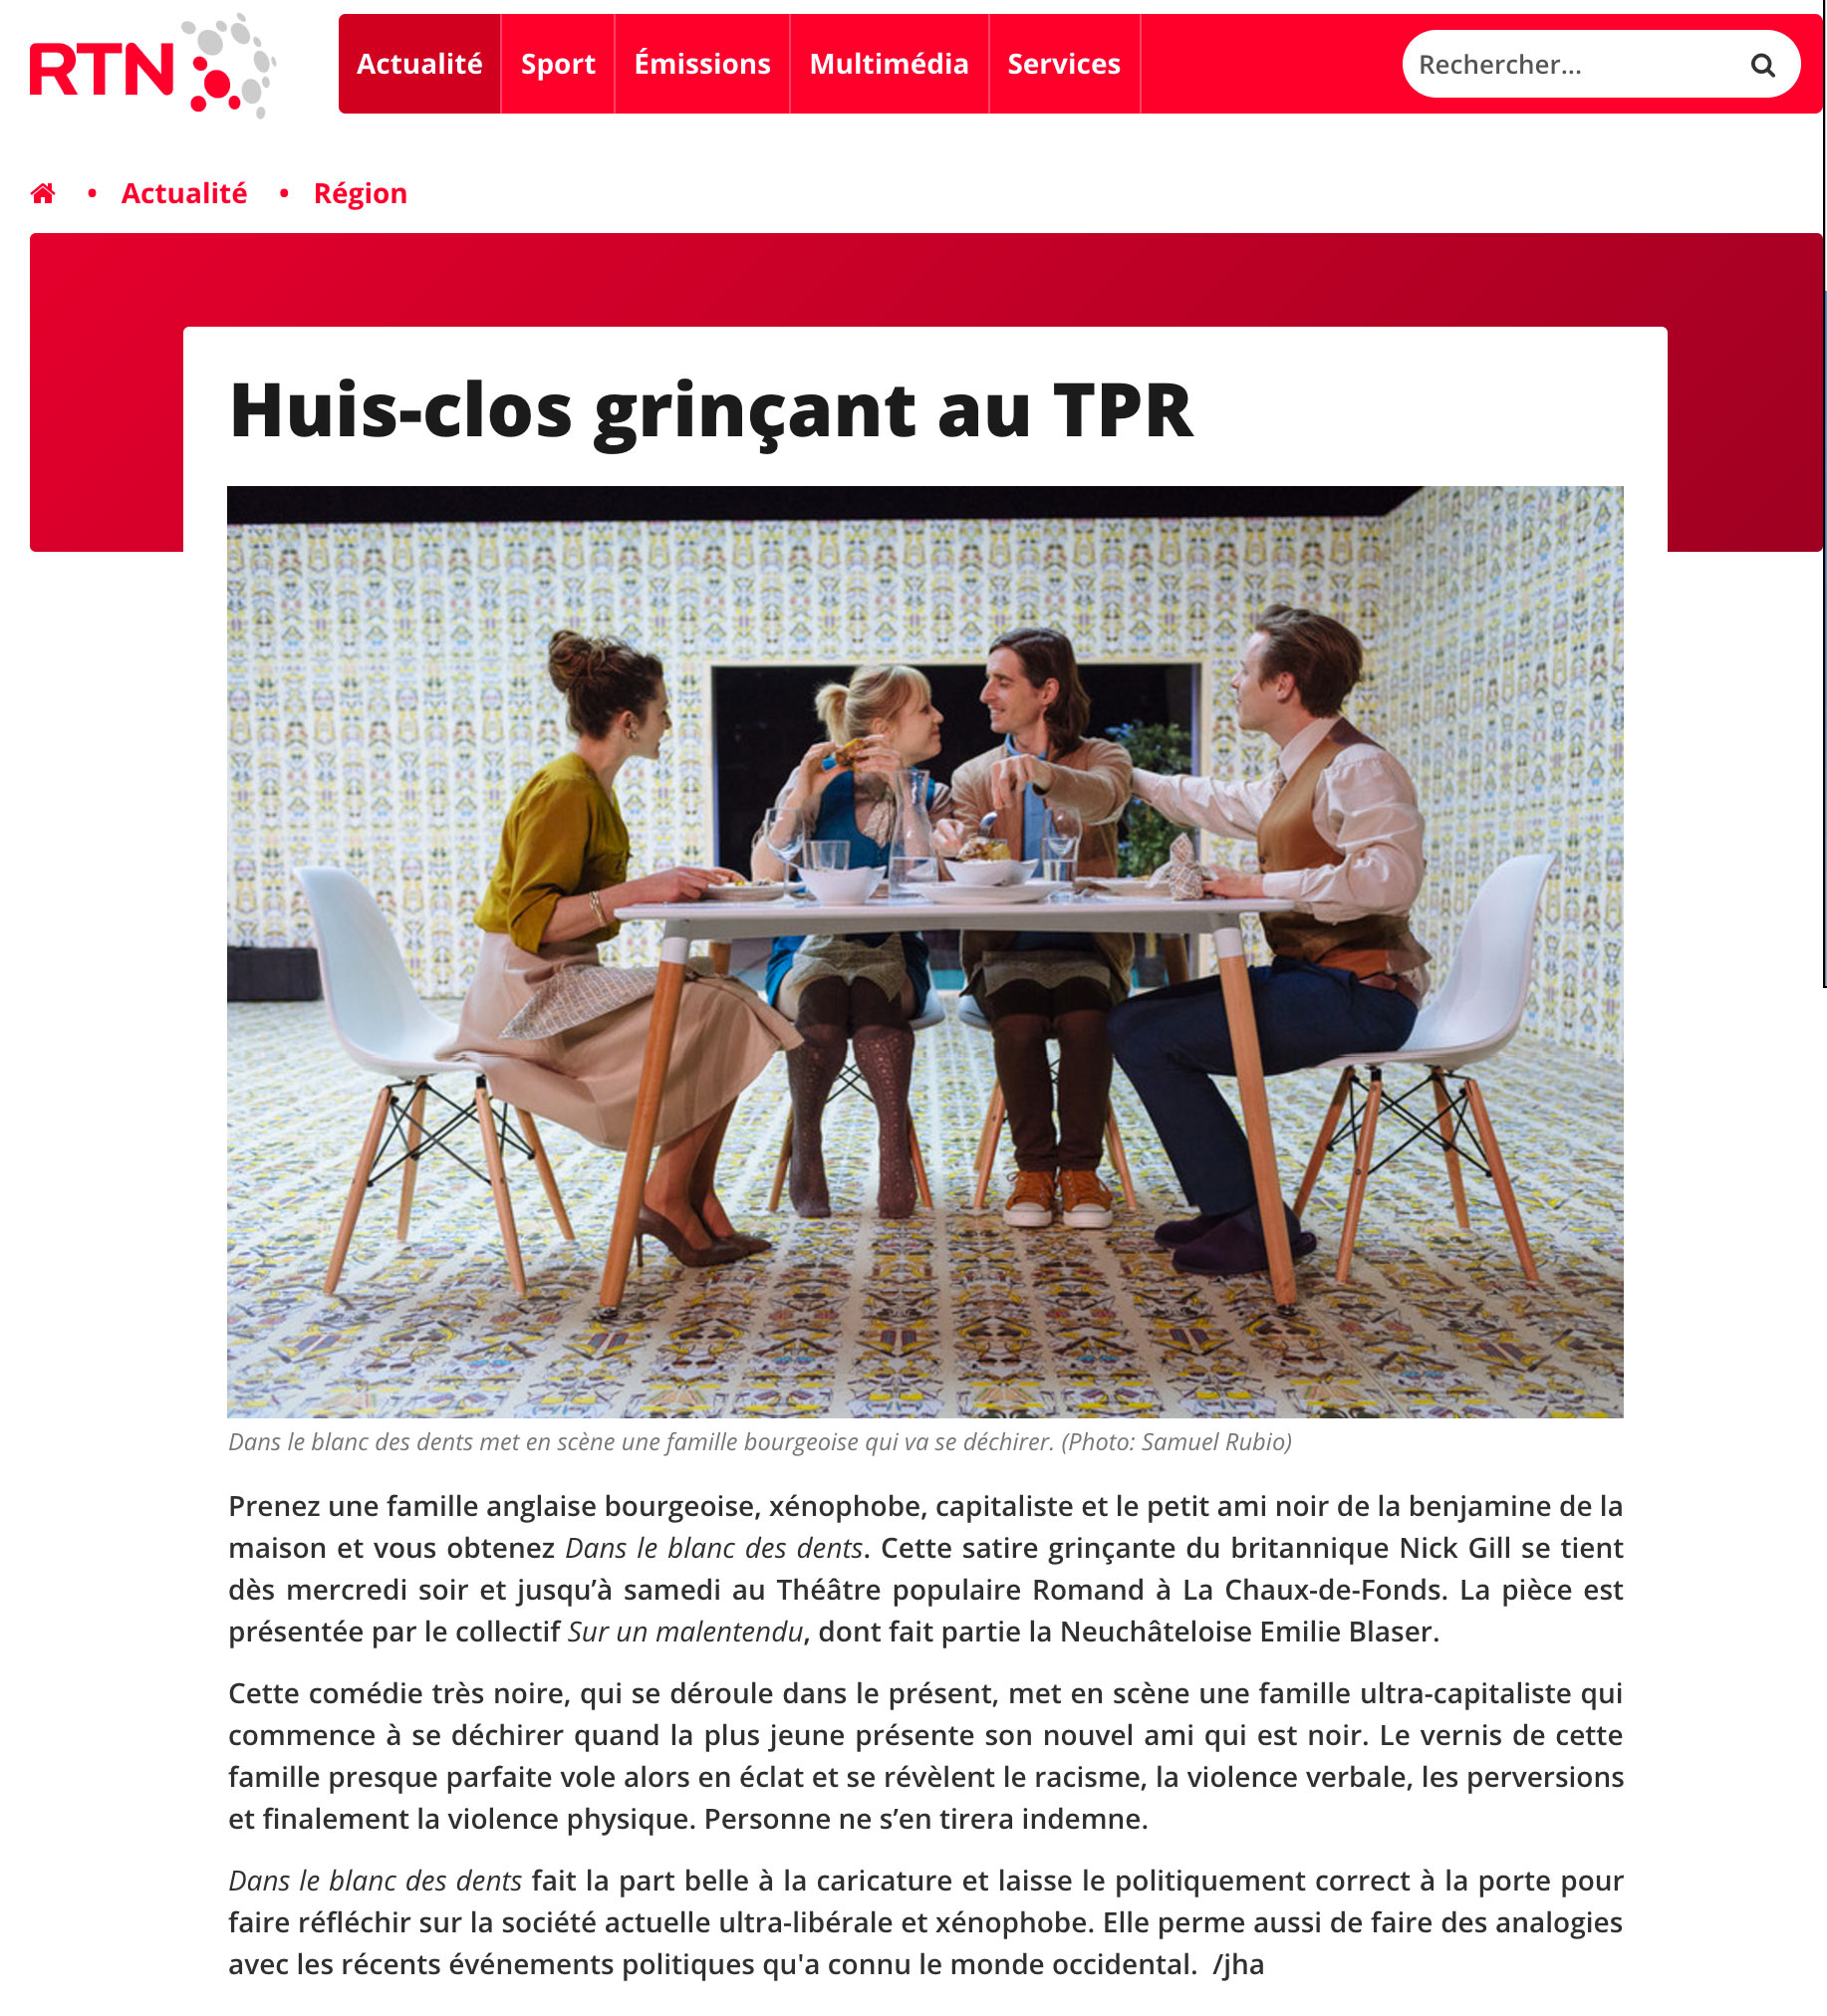 rtn-article-dansleblancdesdents